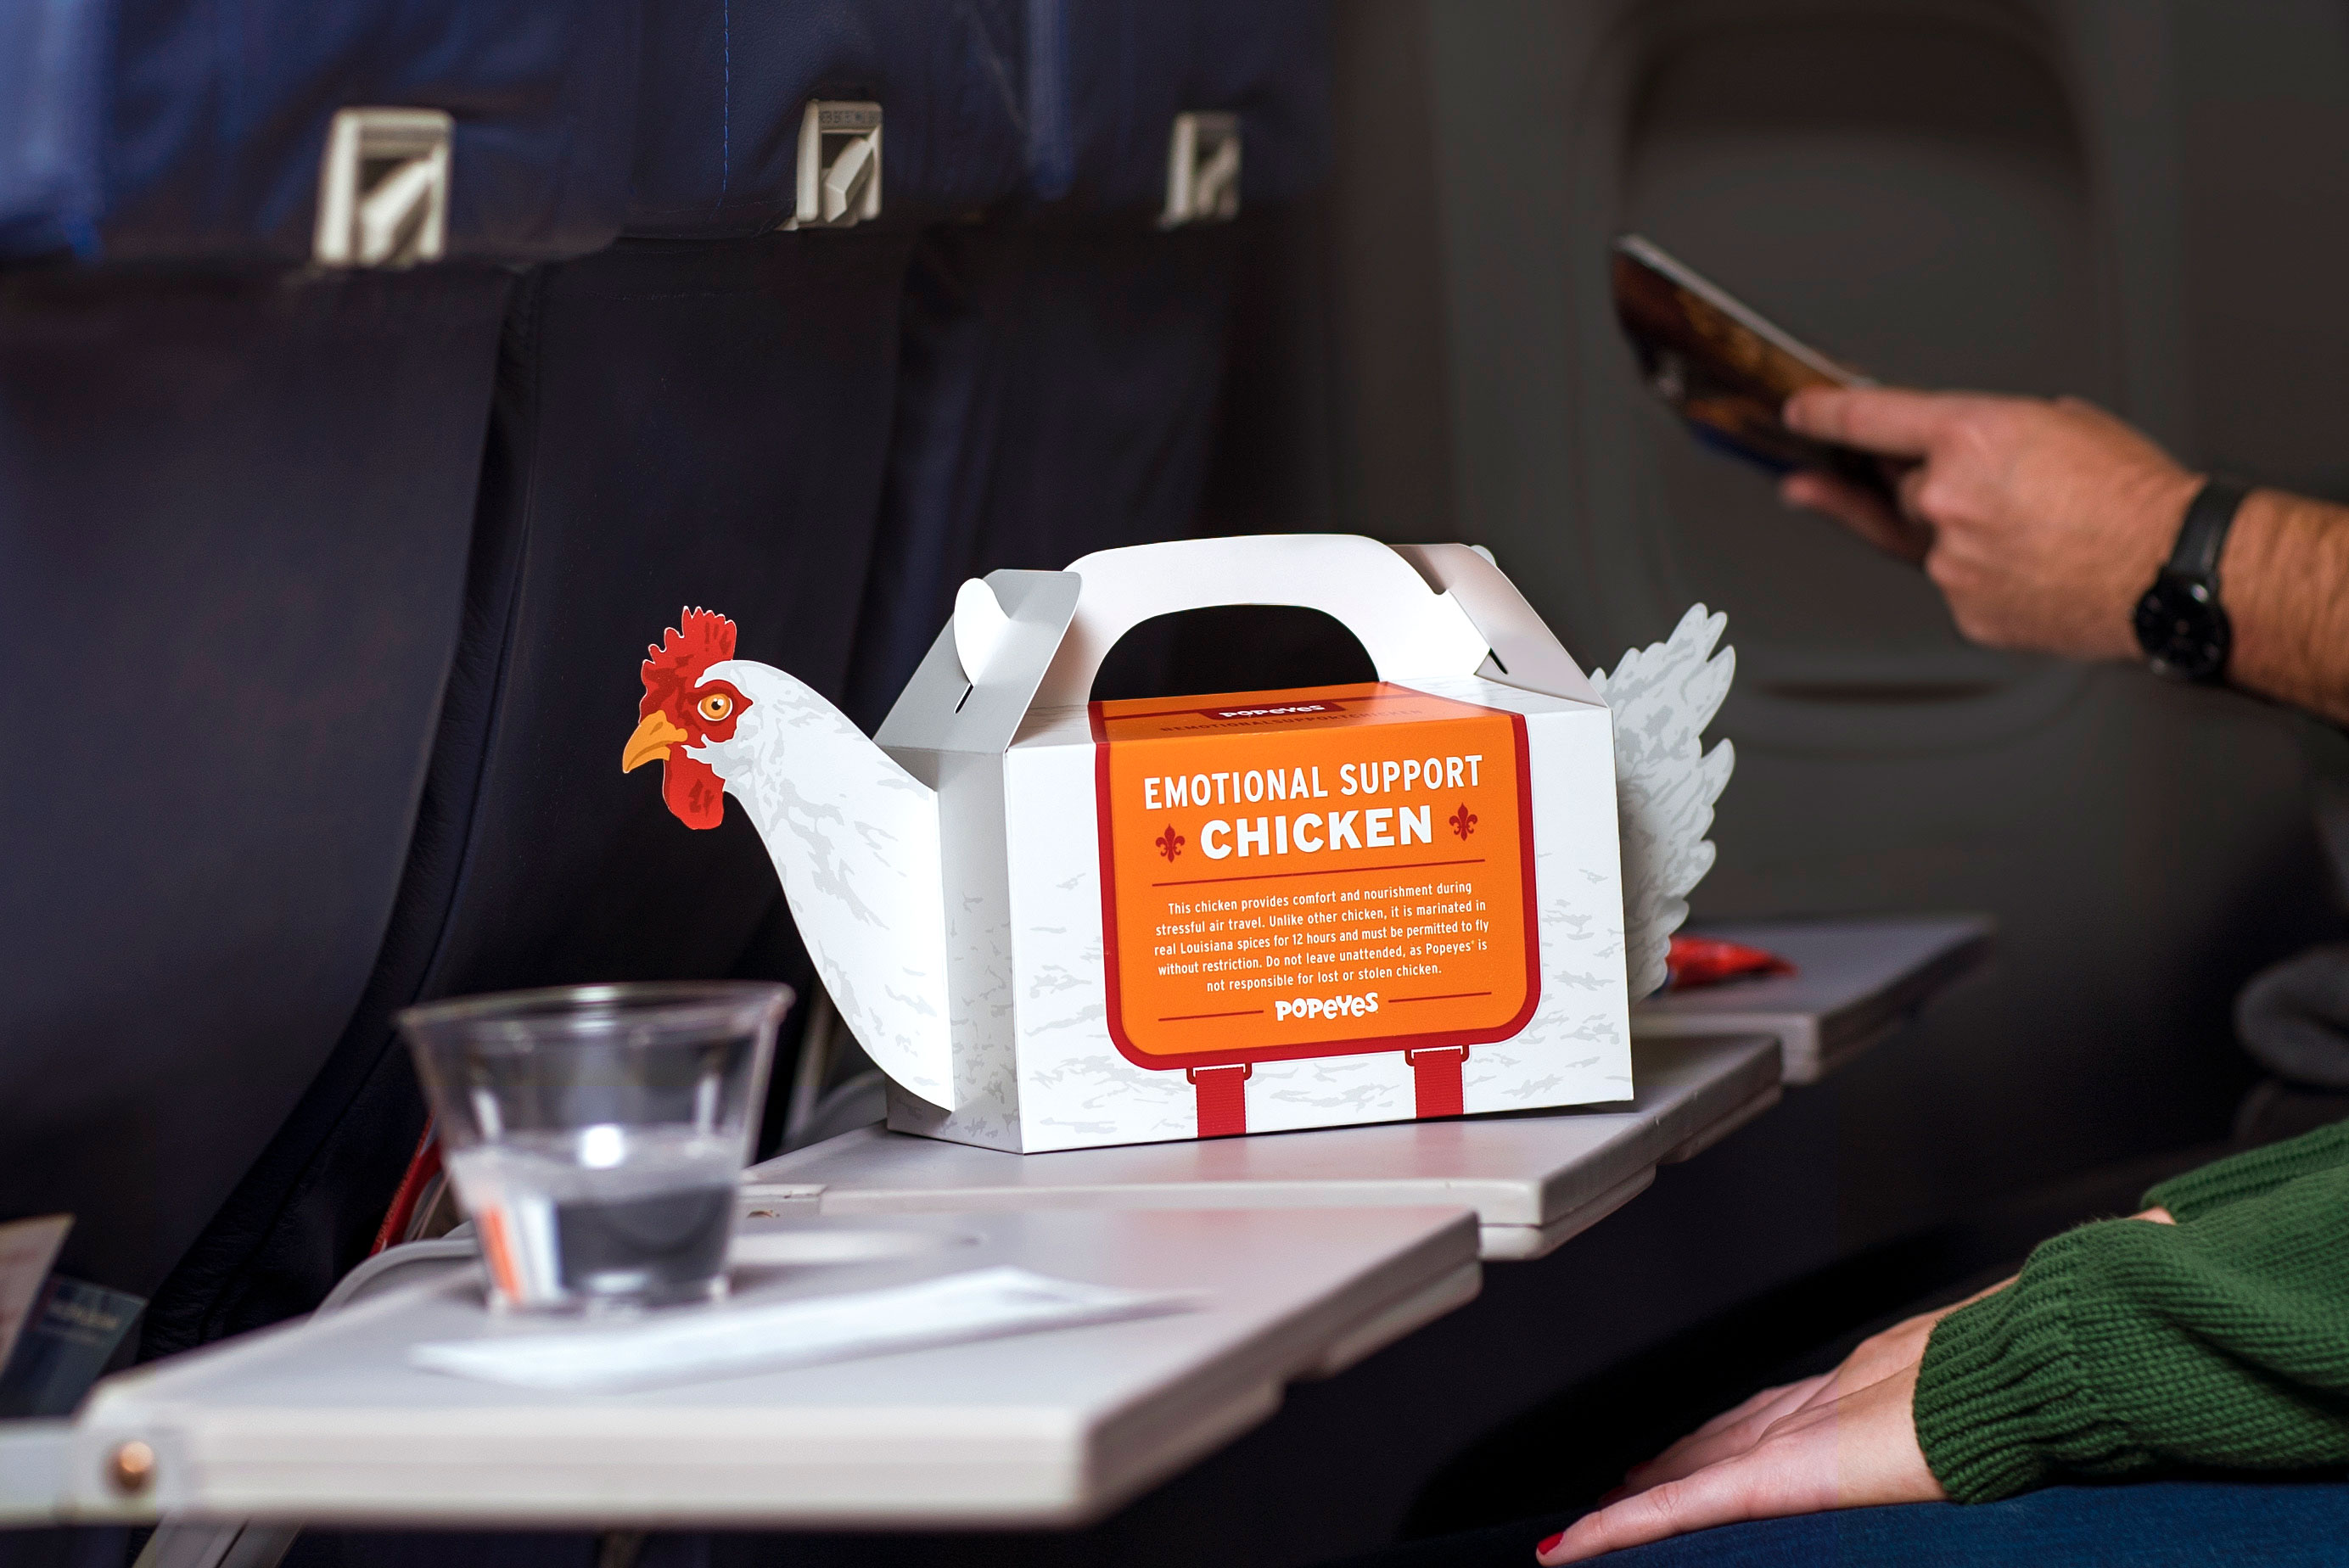 Popeyes Launches 'Emotional Support Chicken' to Make Holiday Travel Less Stressful - Popeye's 'Emotional Support Chicken' box to-go.